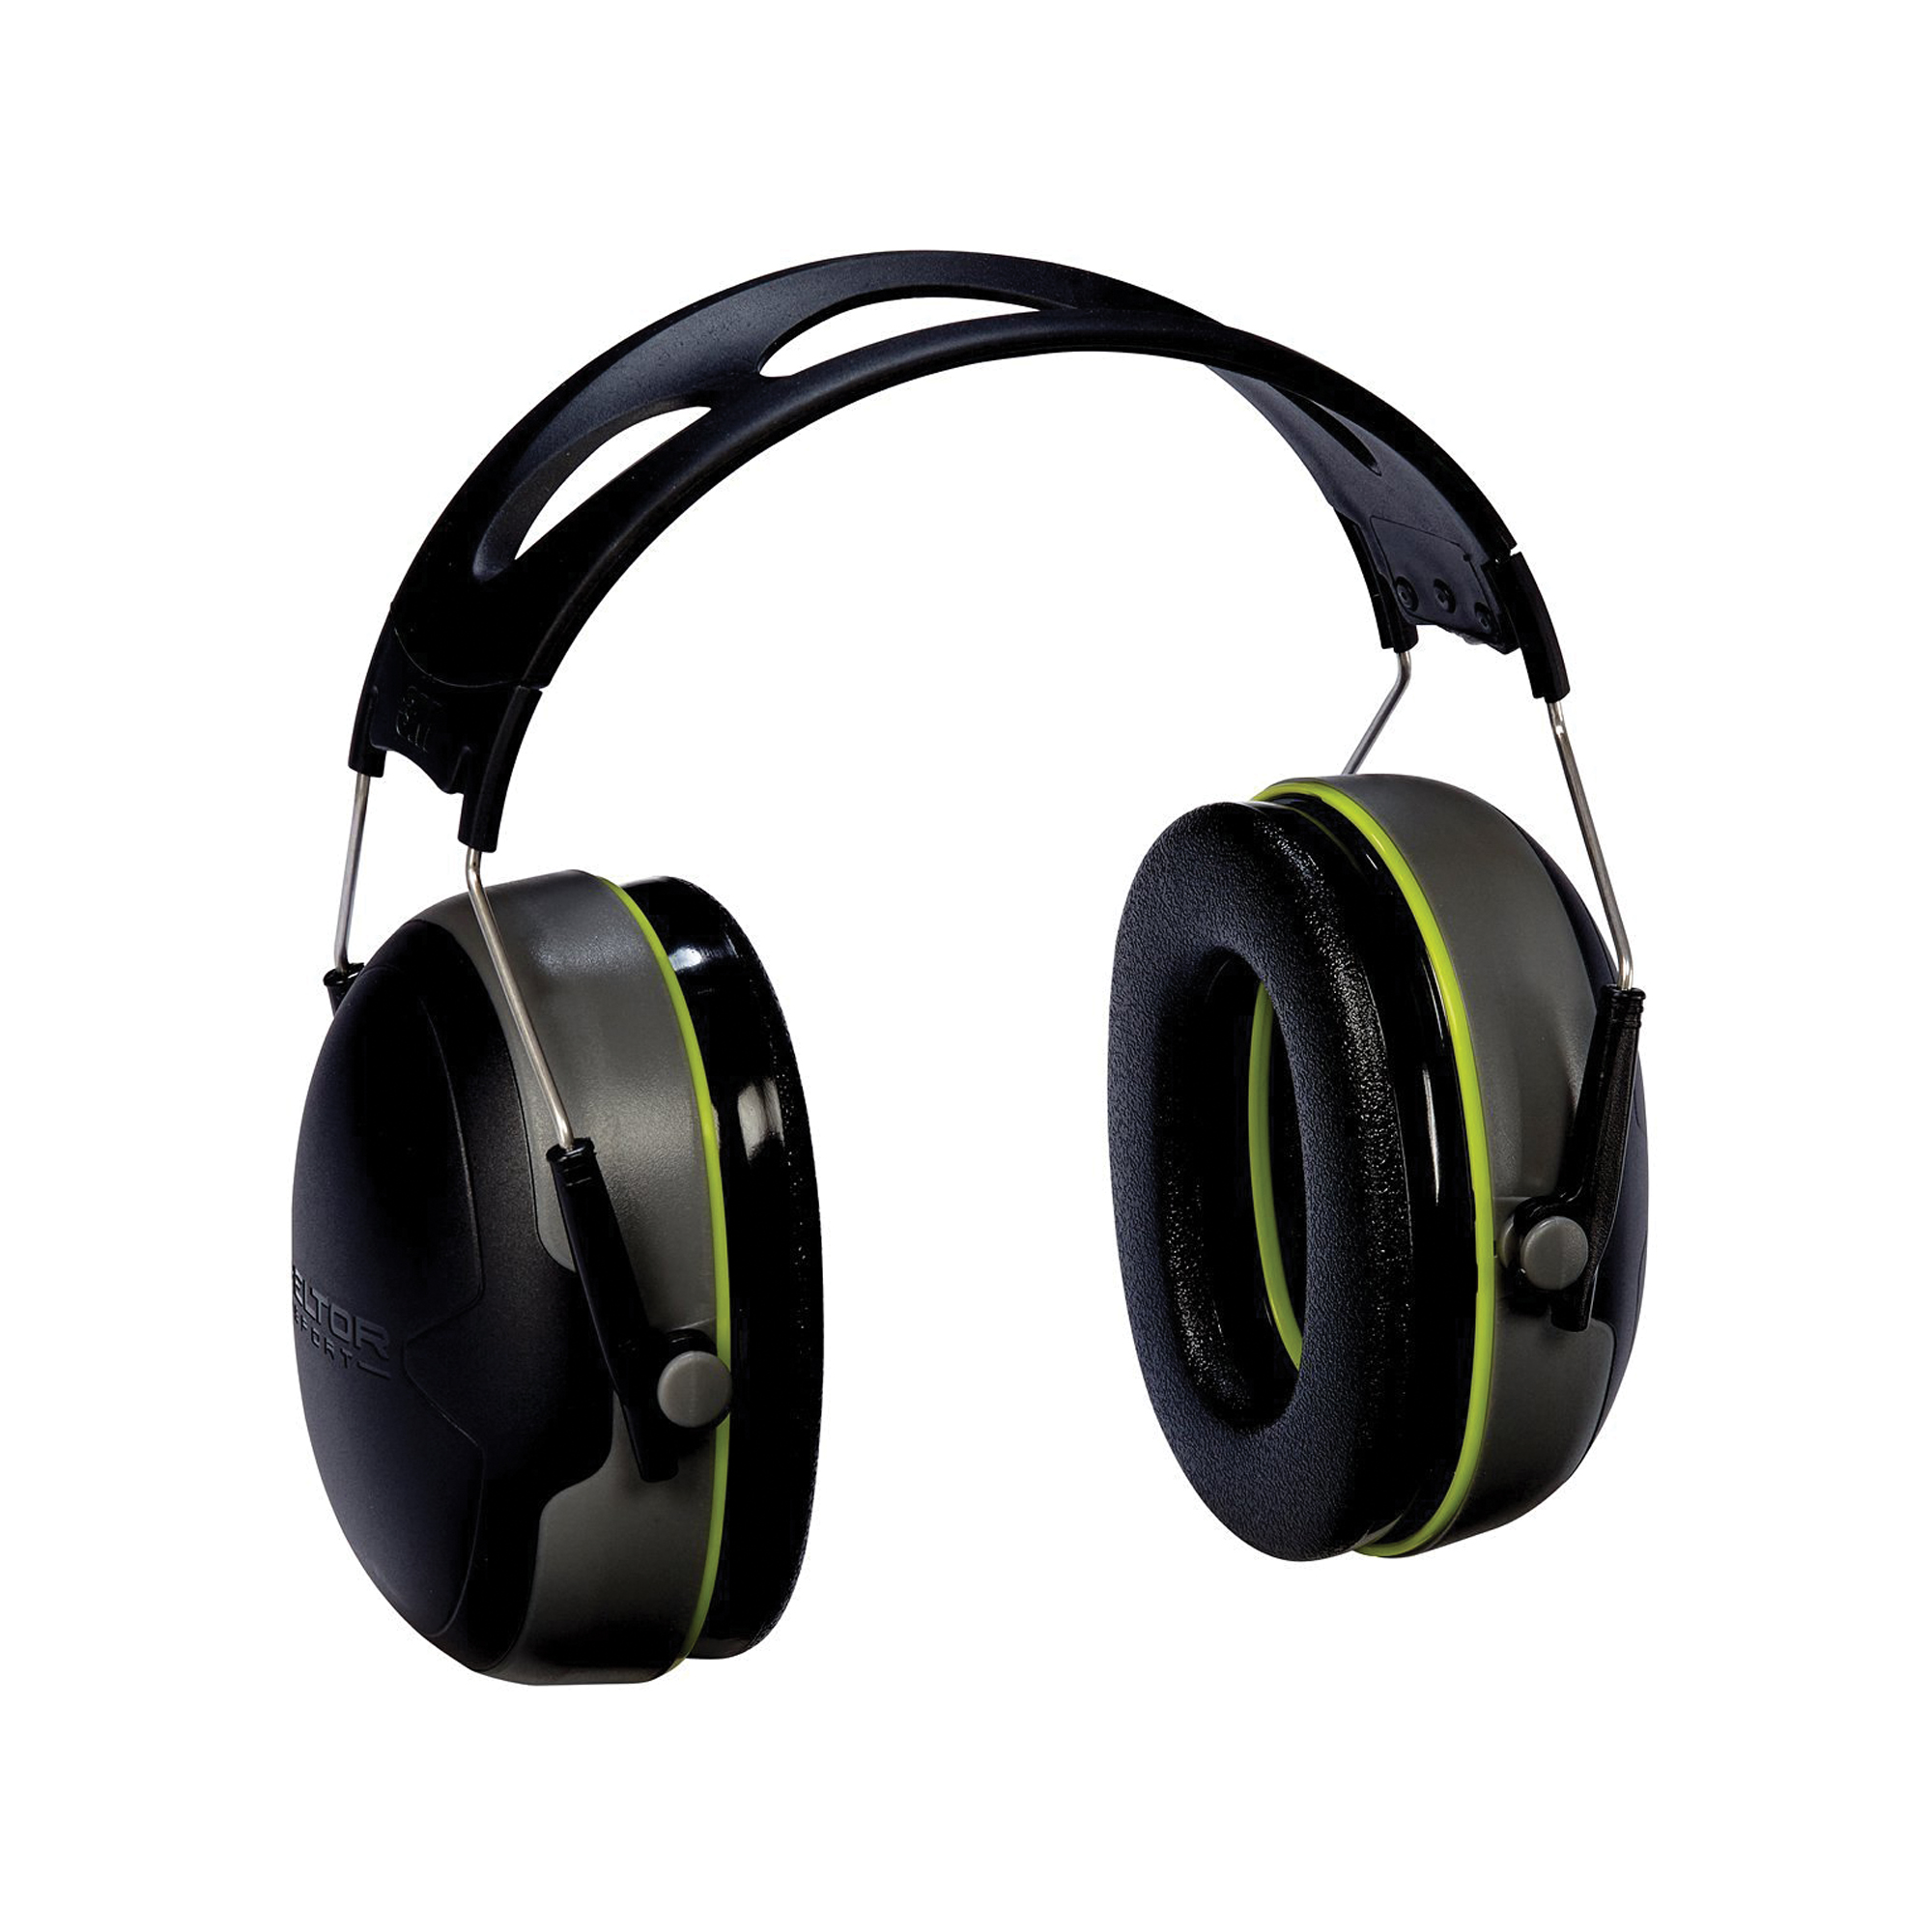 """Designed for safety without sacrificing comfort"""" the Sport Bull's Eye Hearing Protector reduces sound levels for reliable passive hearing protection. This mid-range NRR provides excellent noise reduction"""" yet maintains a low profile."""